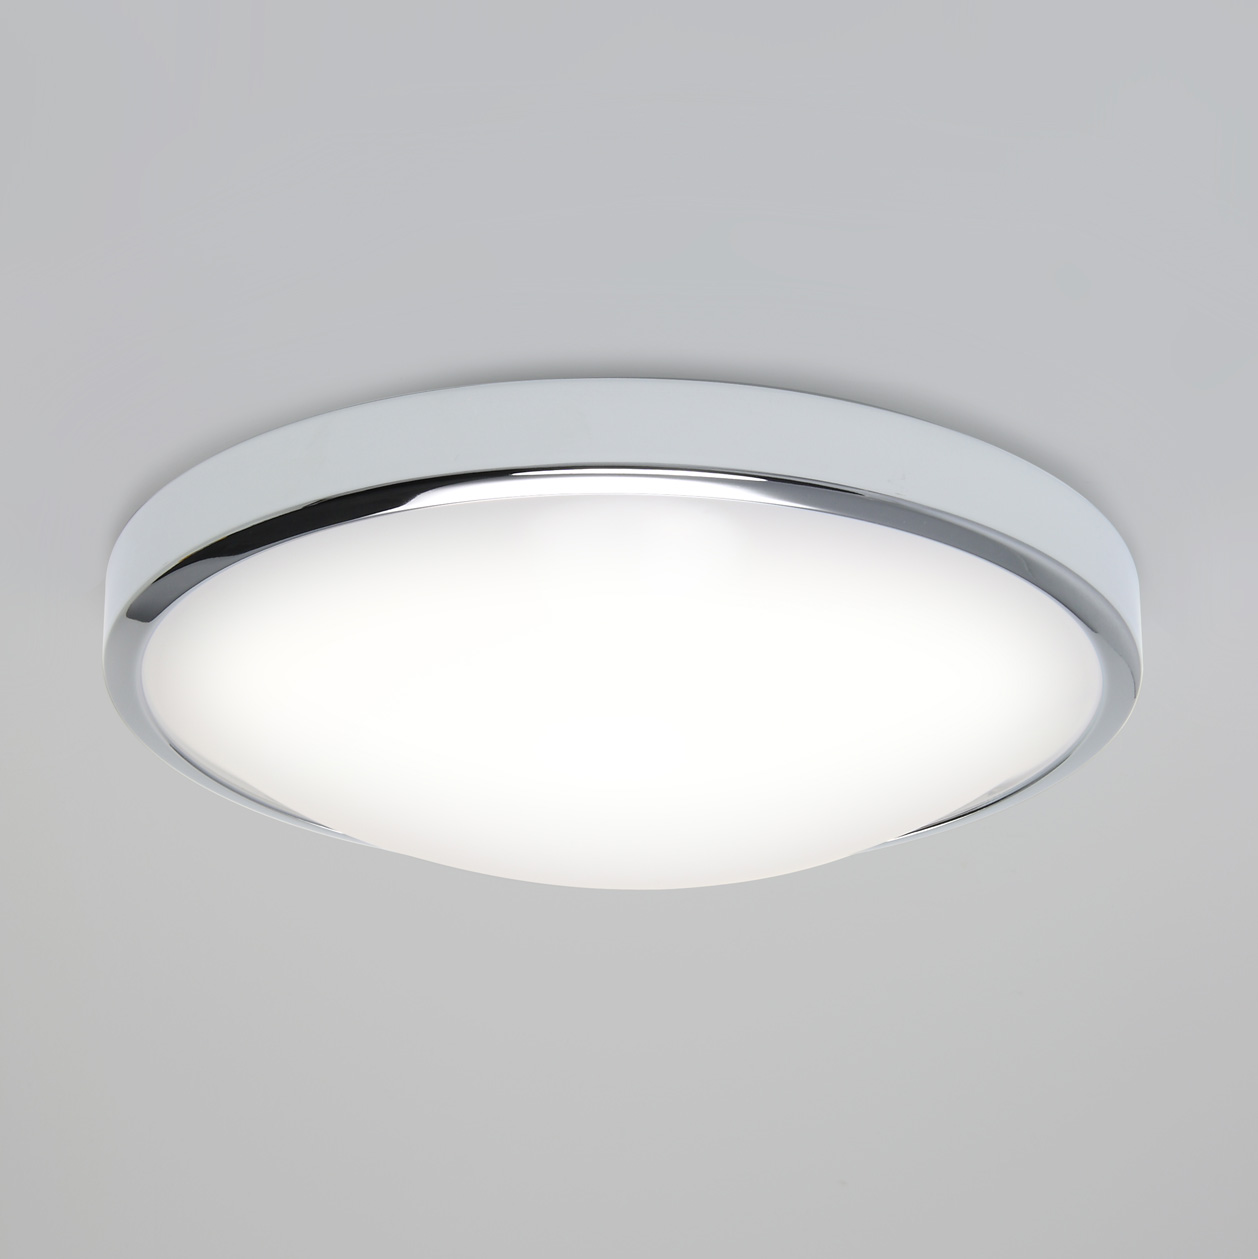 Led Ceiling Lights For Bathroom : Astro osaka microwave pir led bathroom ceiling wall